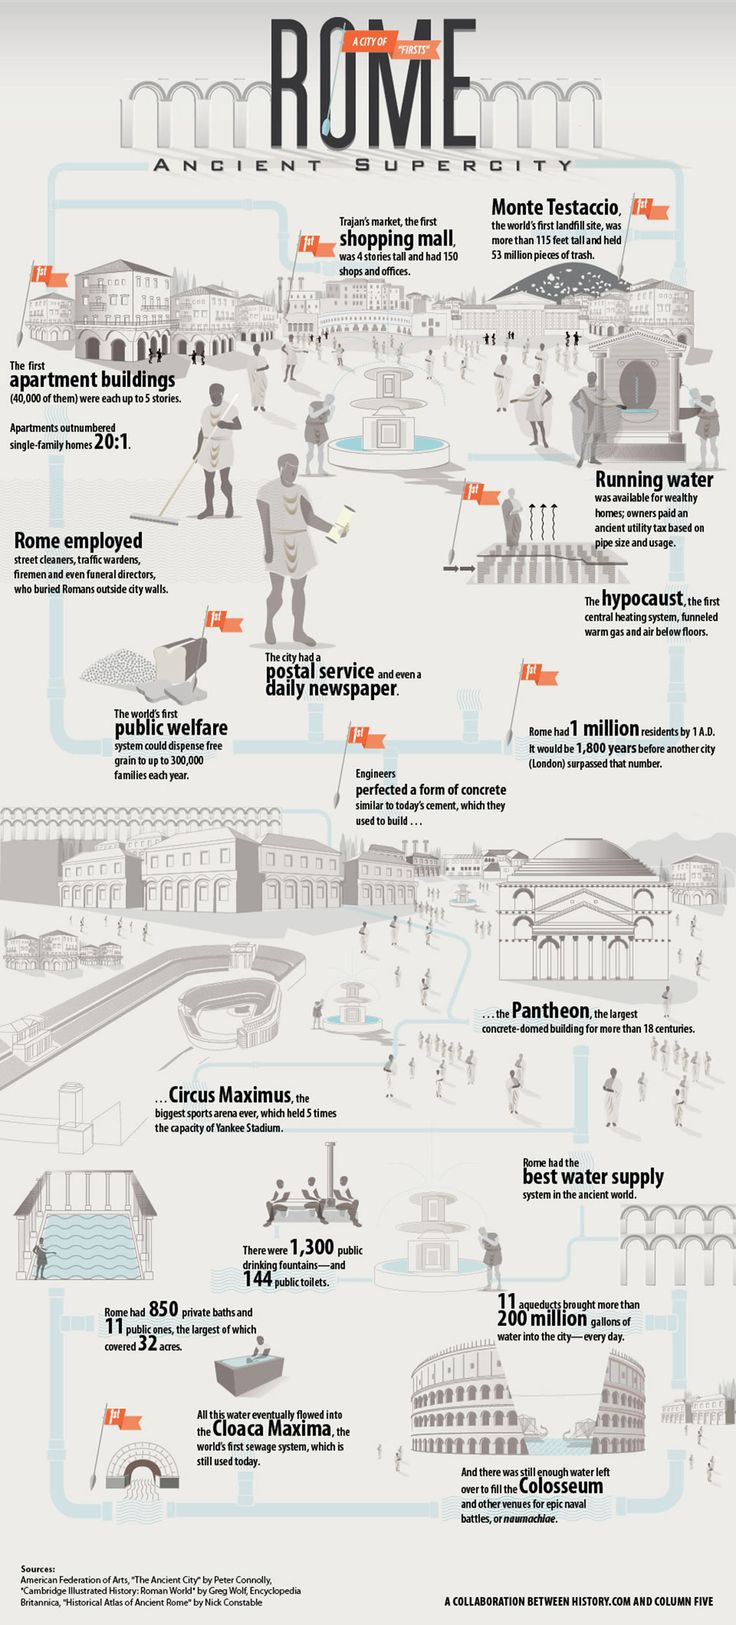 Rome Ancient Supercity Infographic #history #architecture #medieval